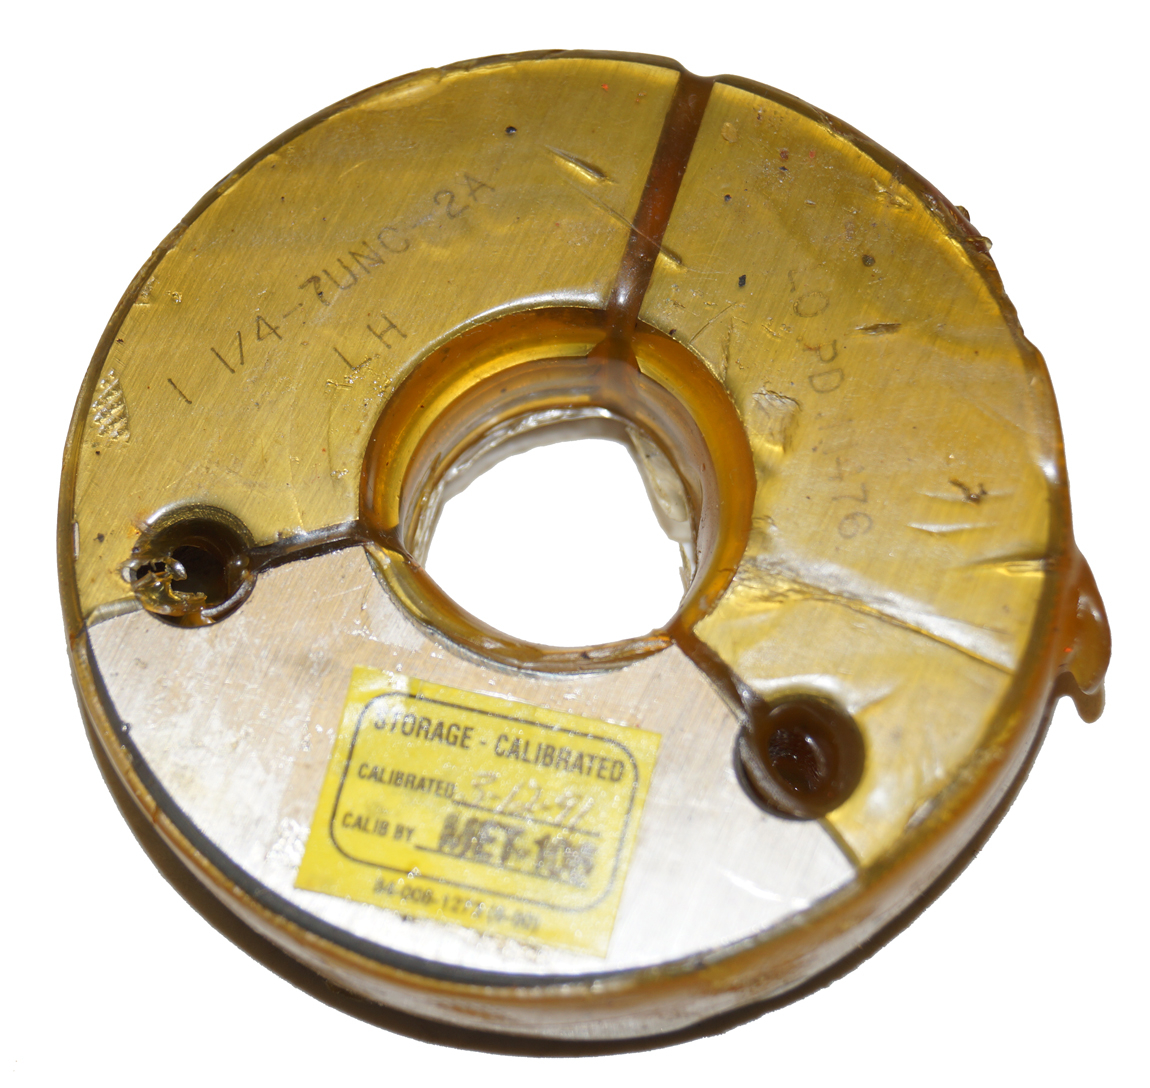 "Thredco 1-1/4"" - 7UNC-2A LH Thread Ring Gage"